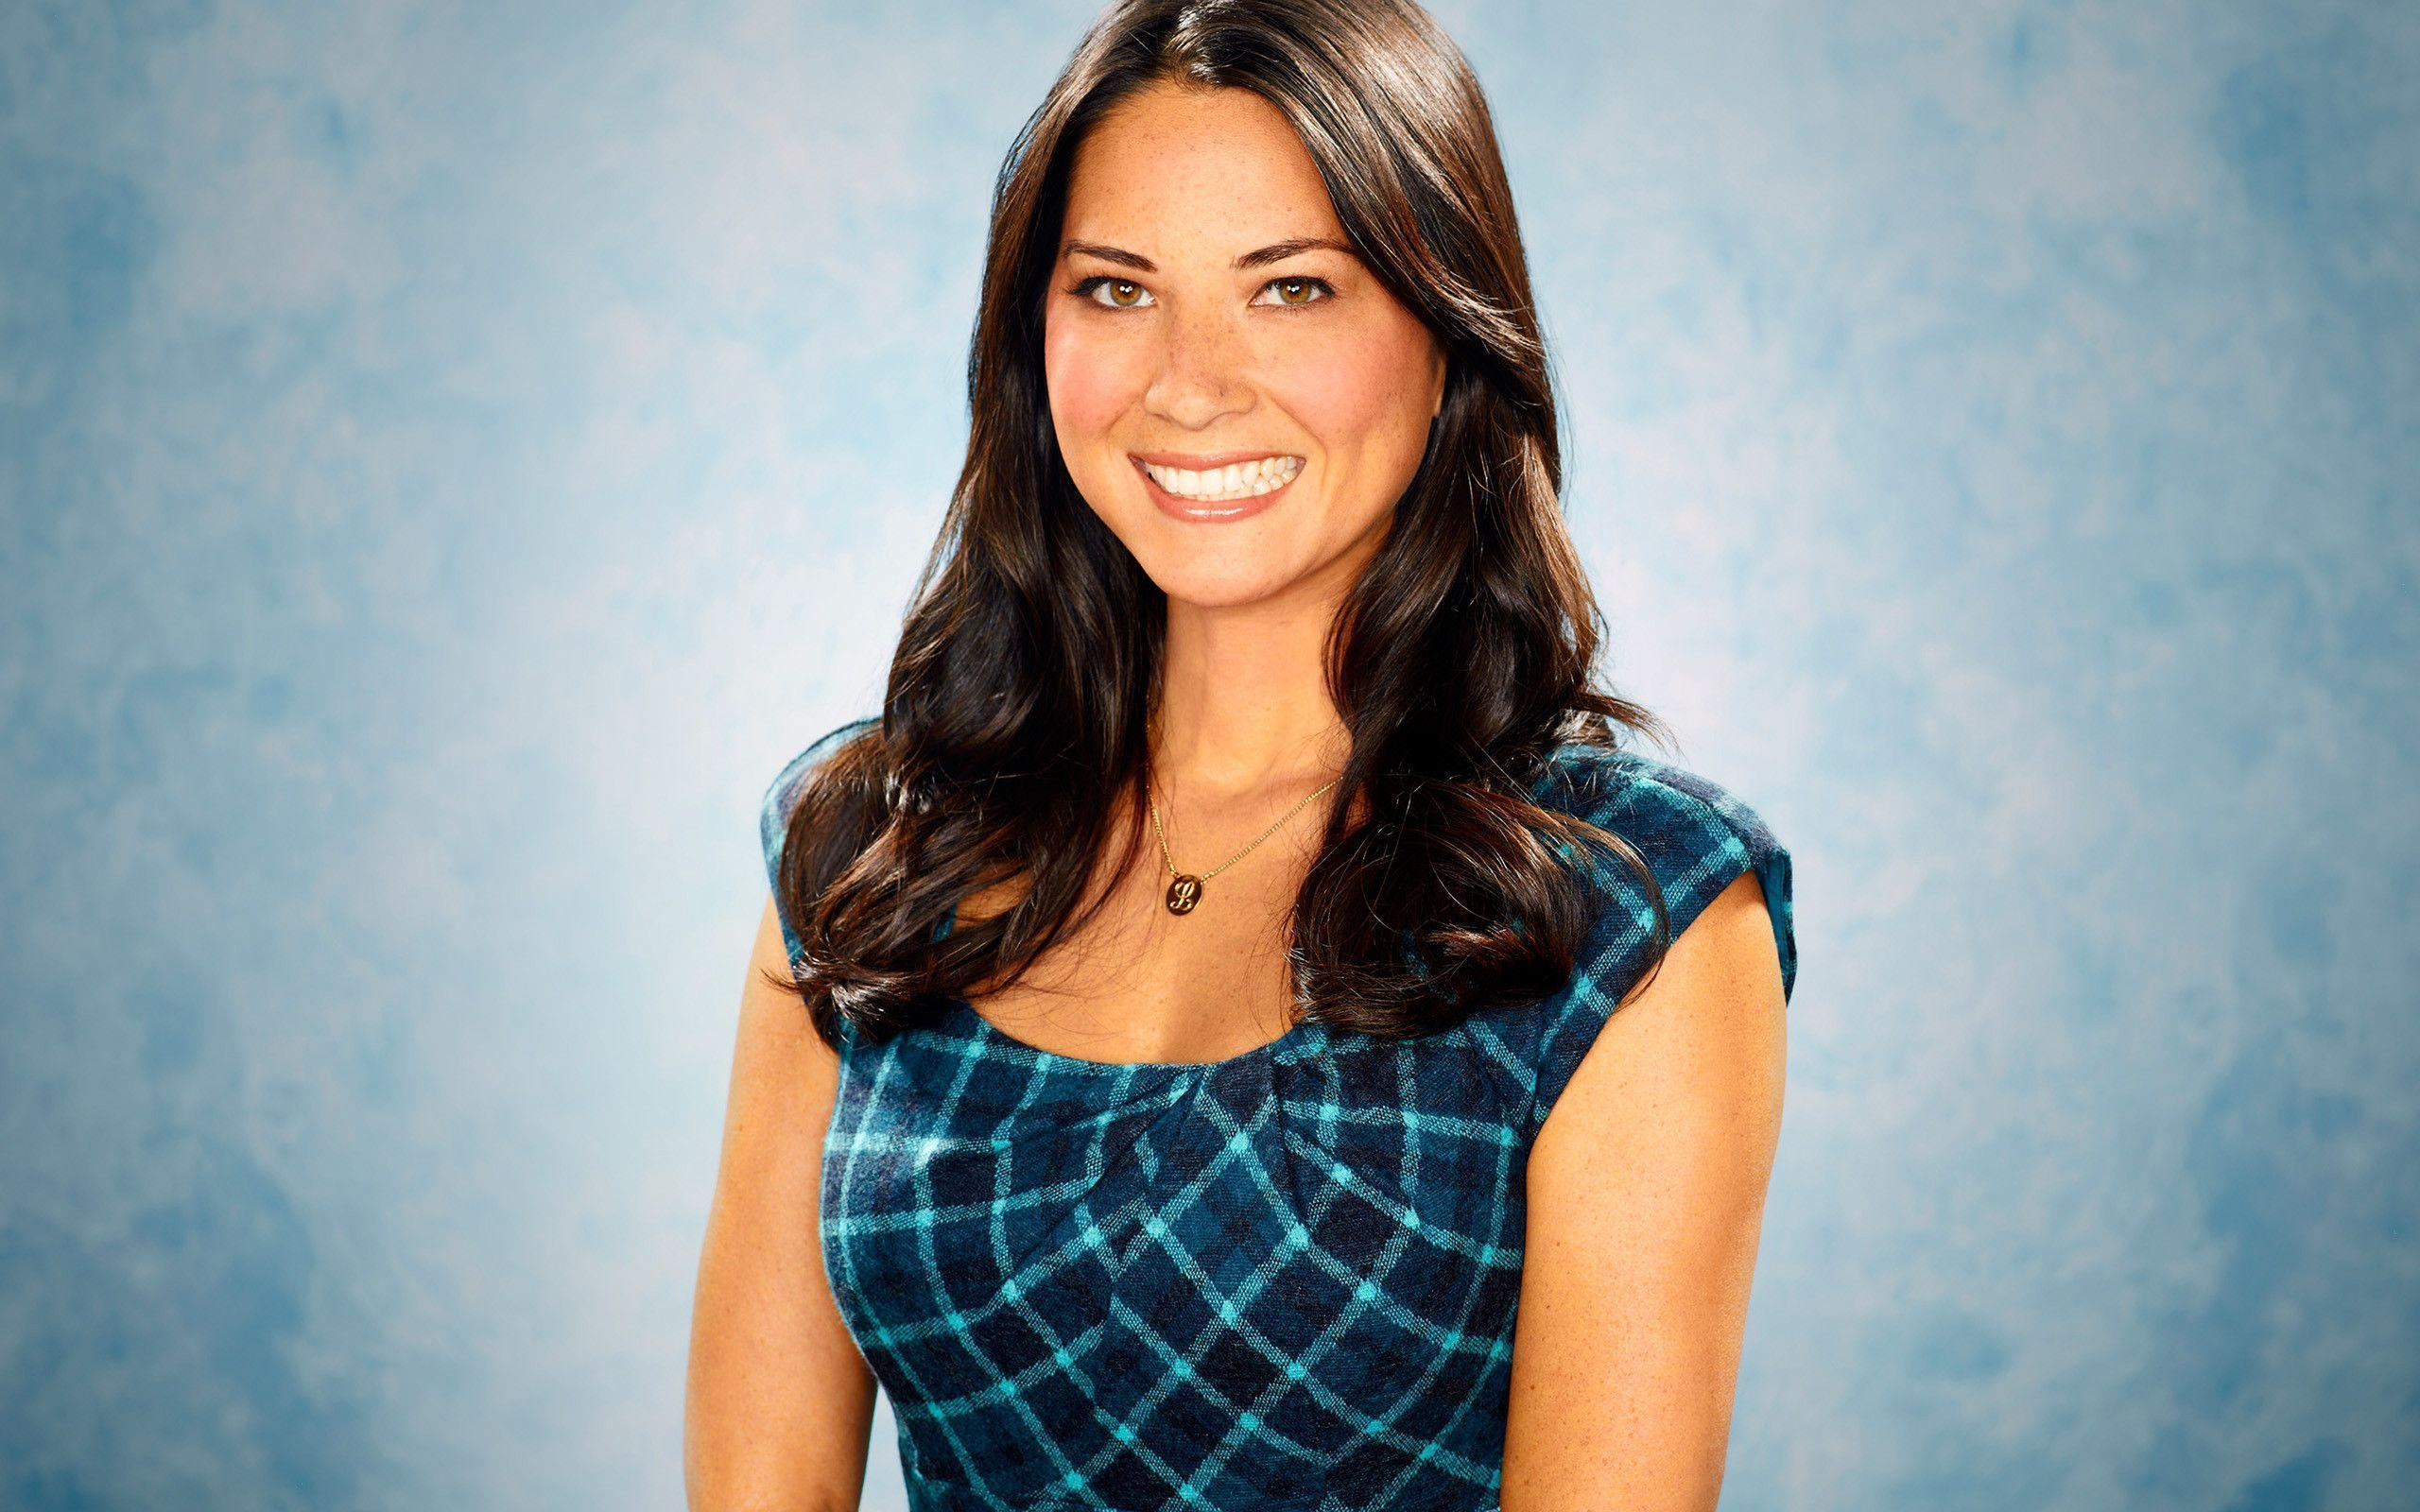 Fonds d&Olivia Munn : tous les wallpapers Olivia Munn